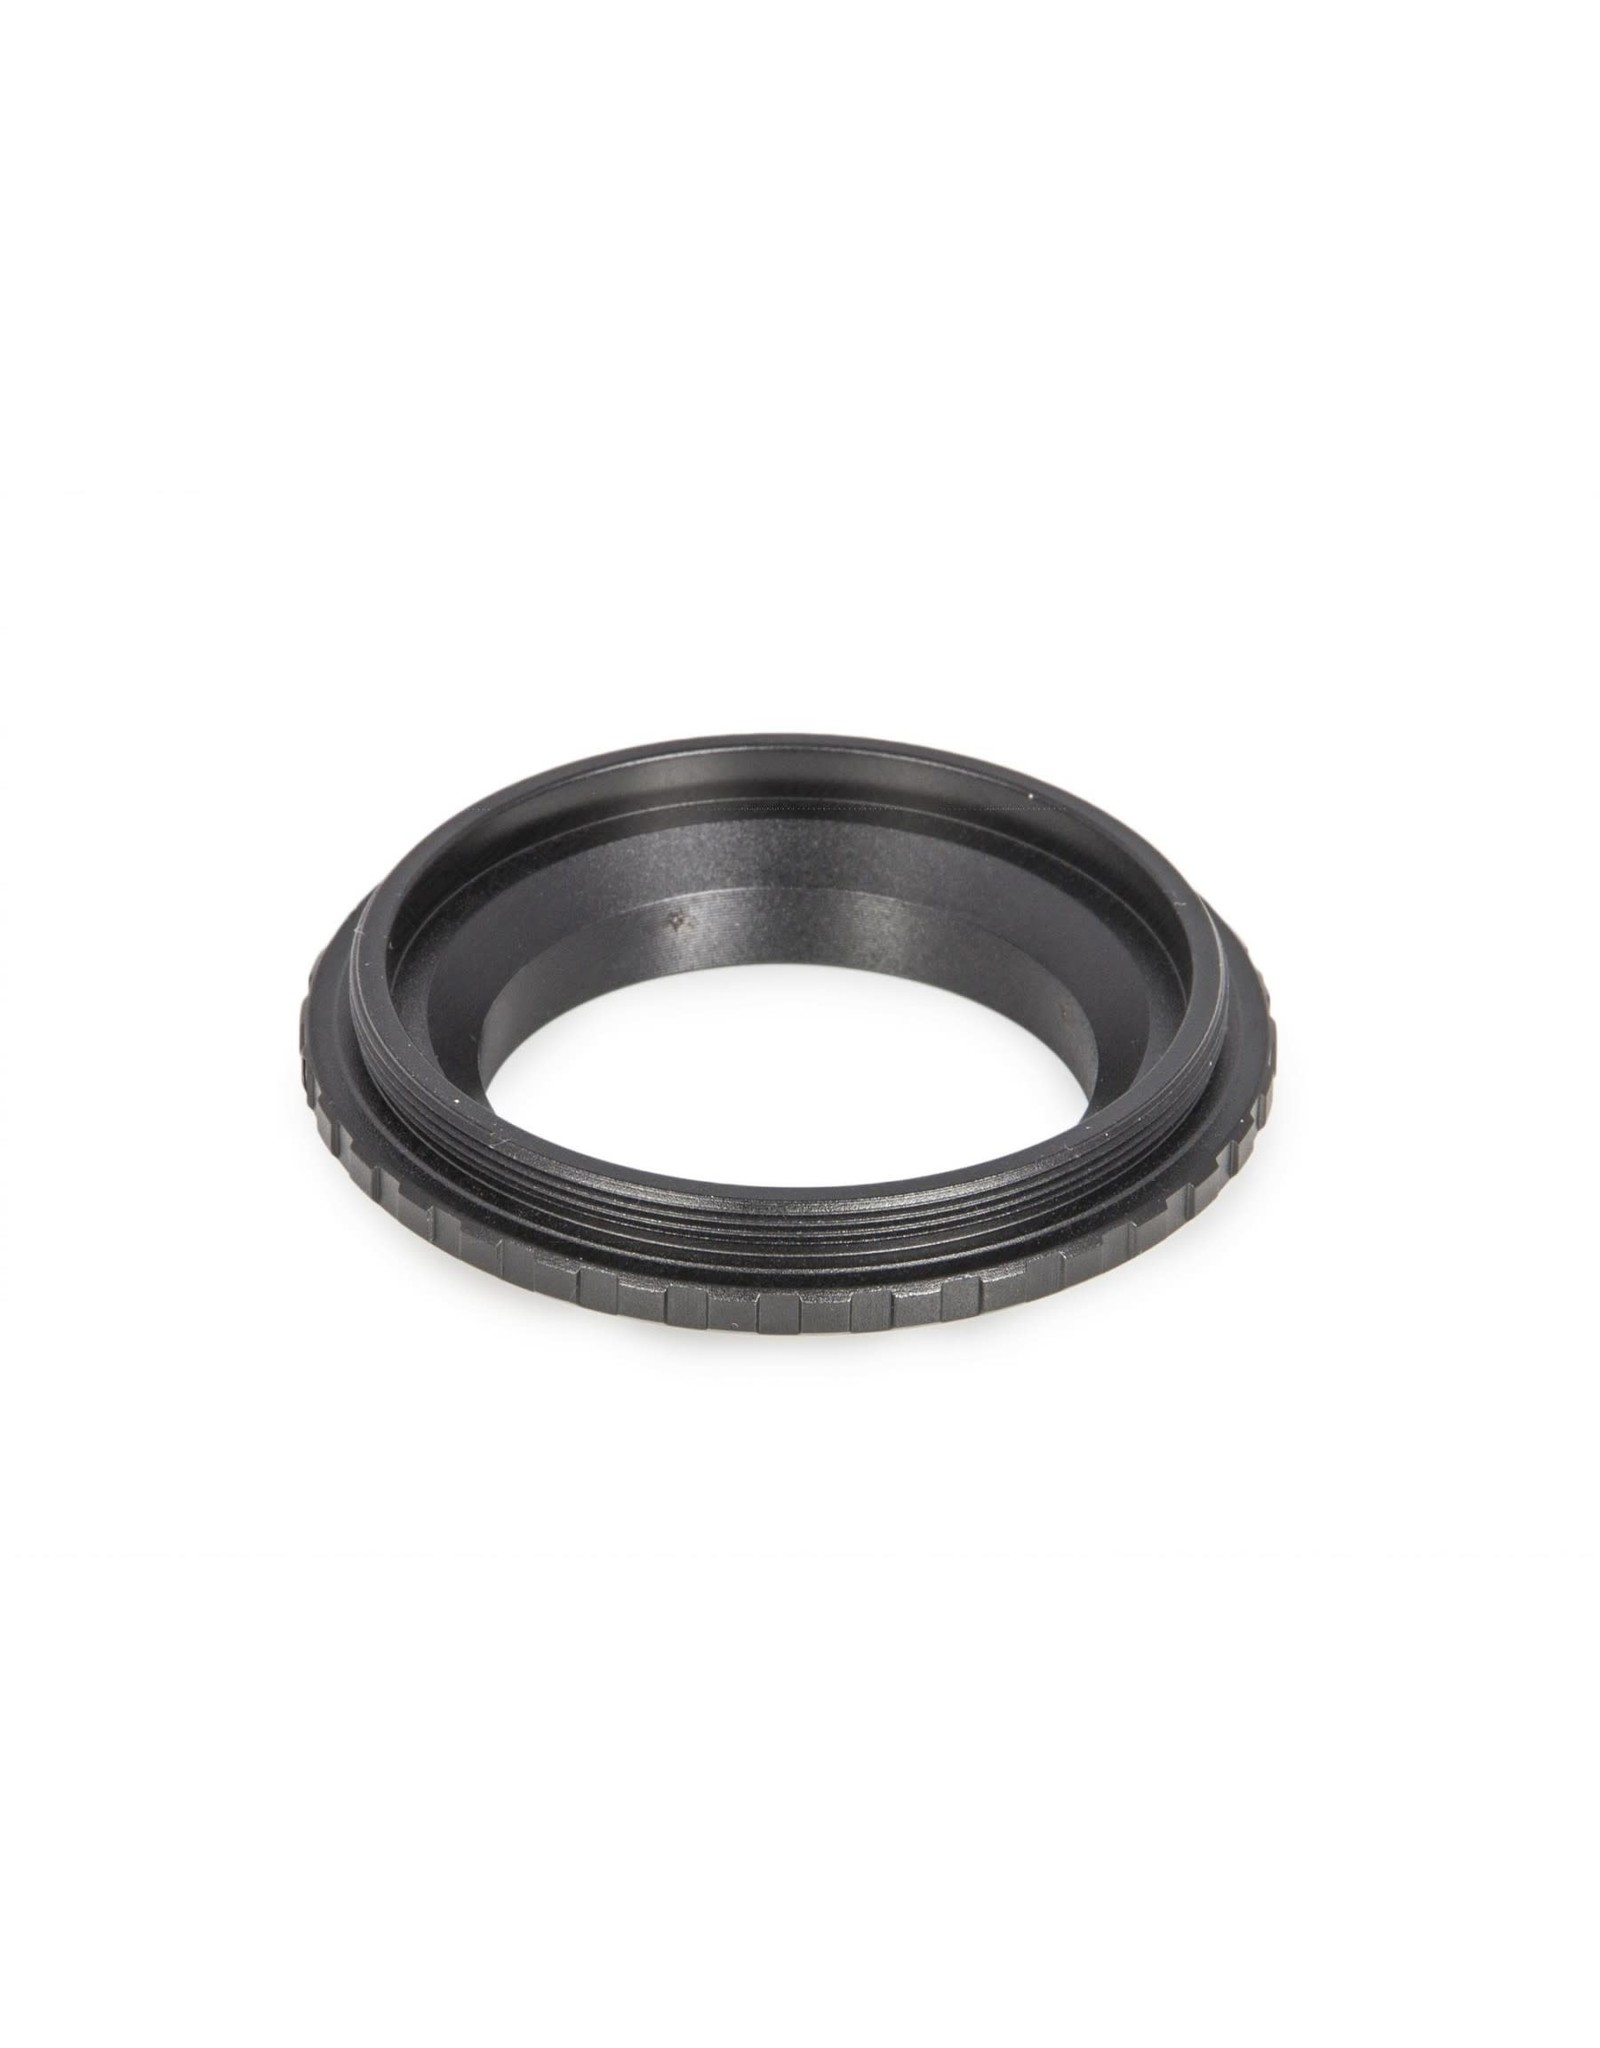 Baader Planetarium Adapter M68/S52 for Baader Wide-T-Rings